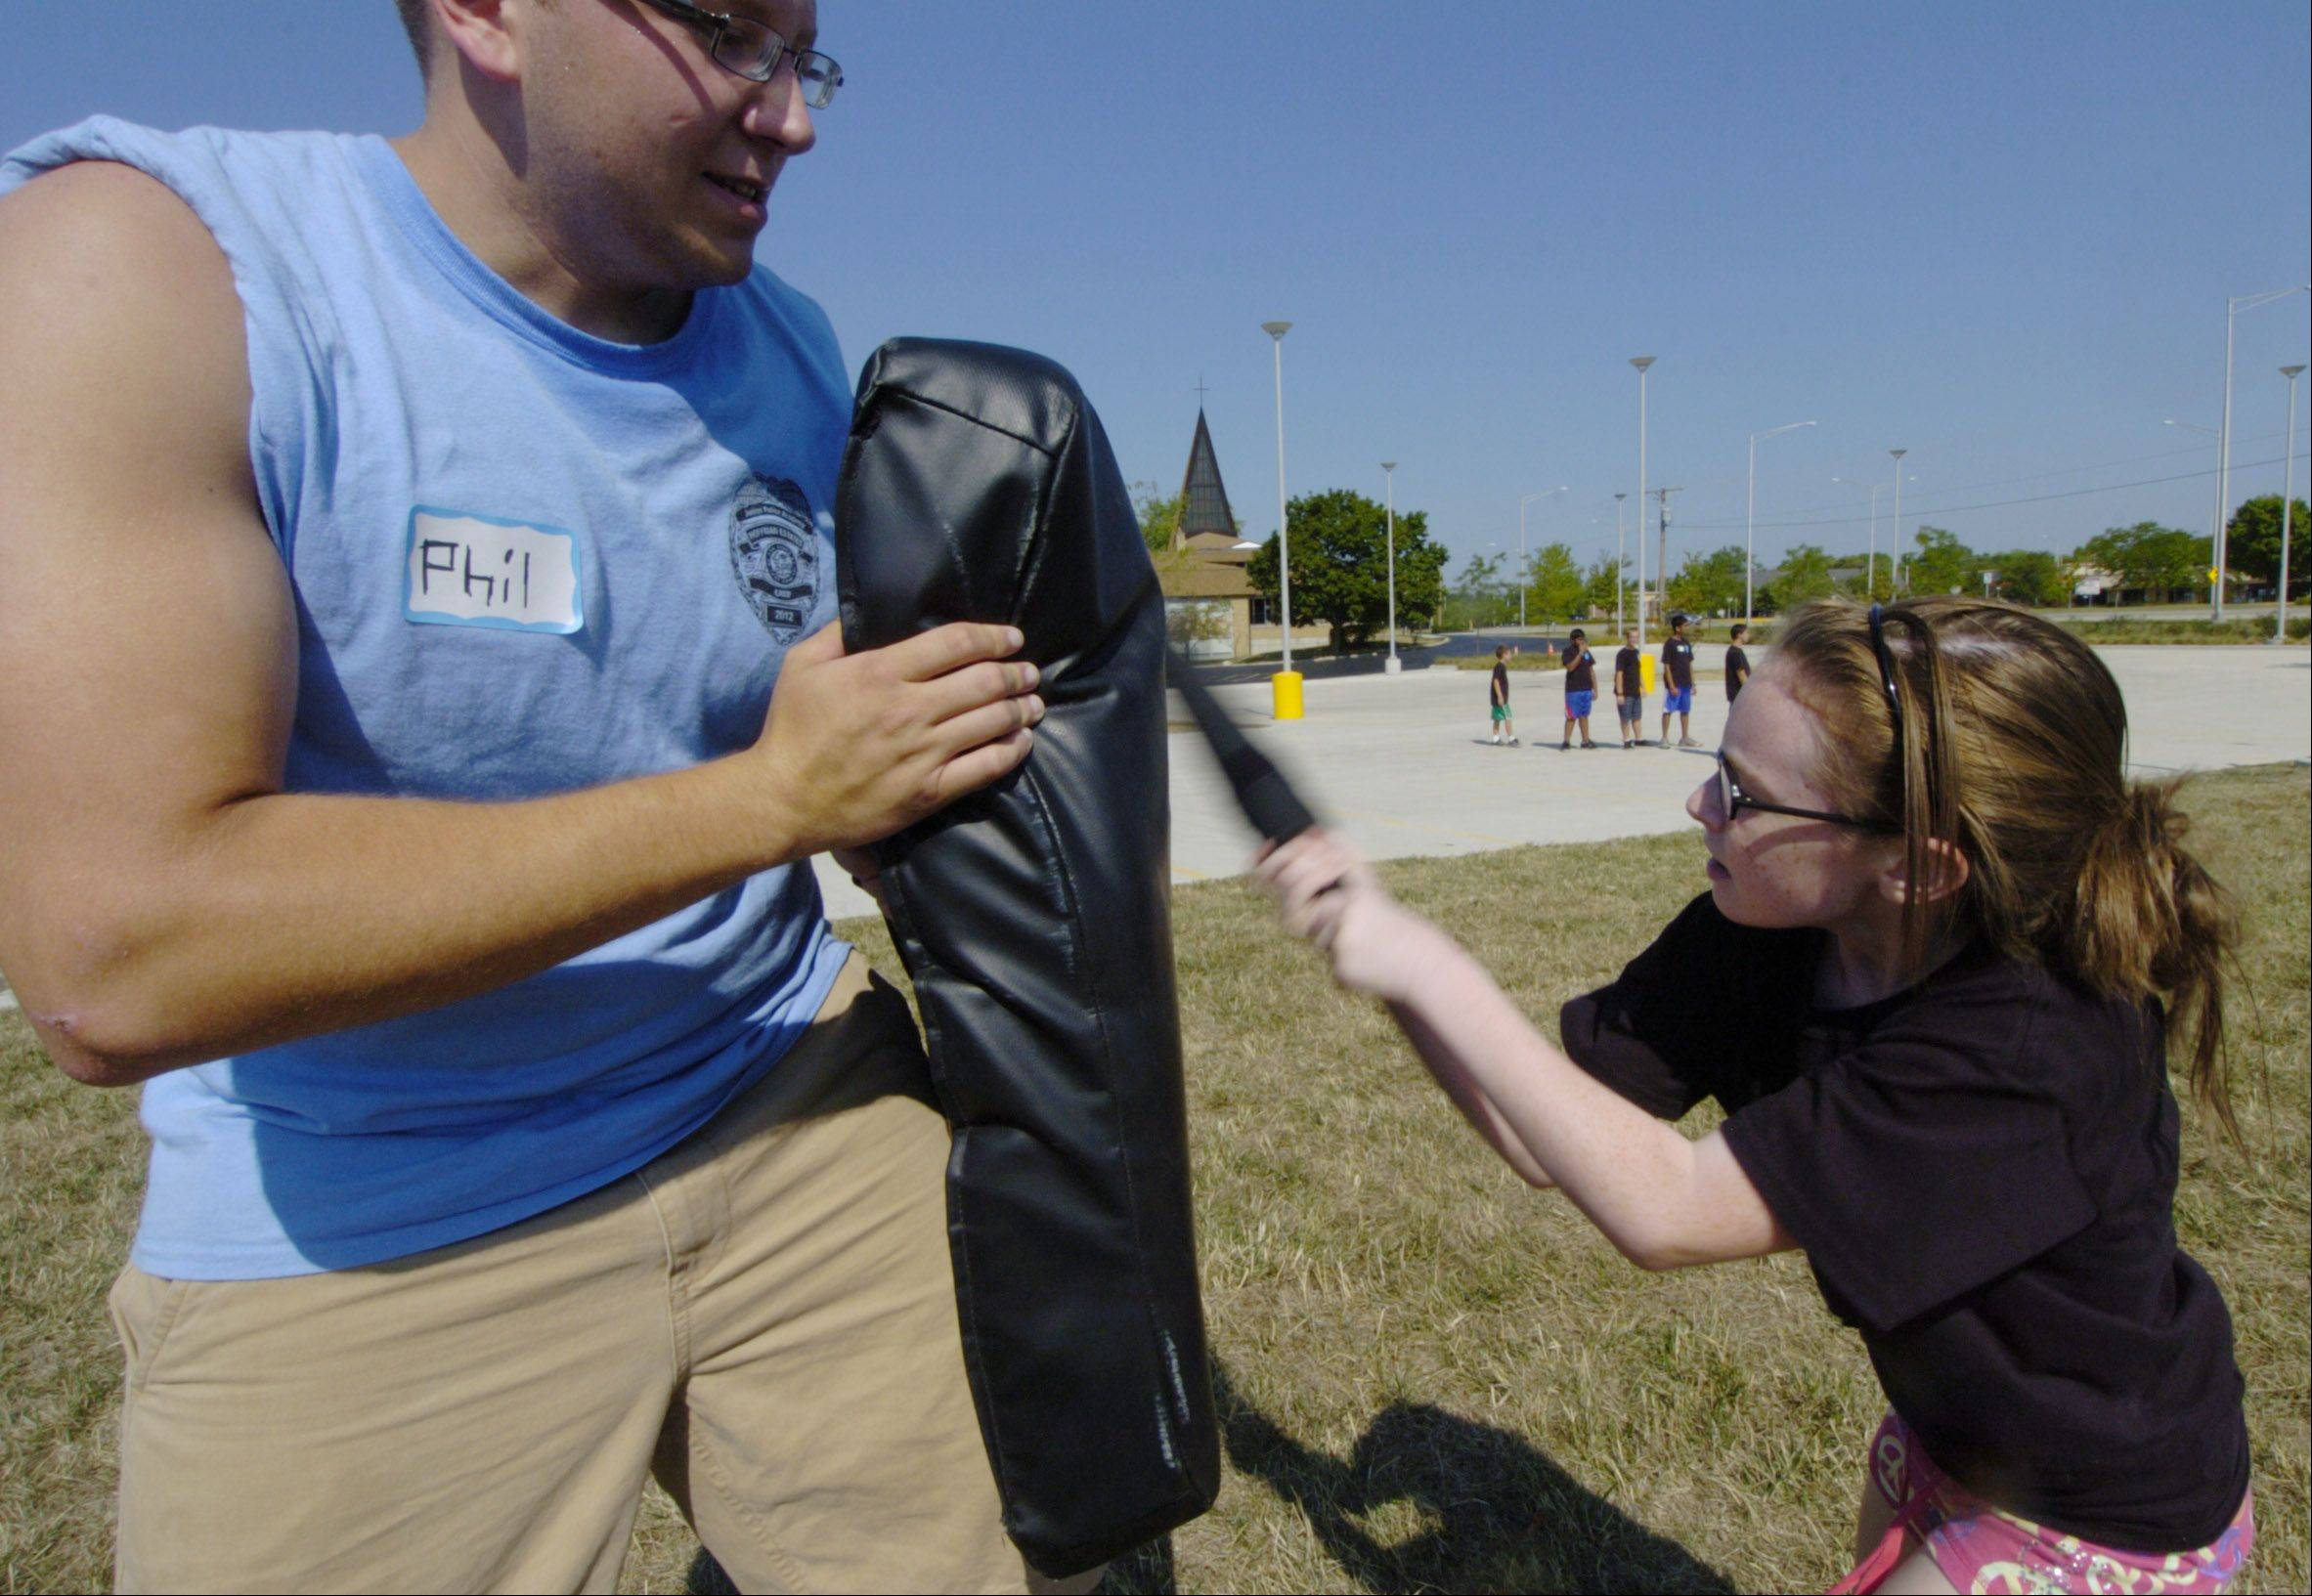 Though he's more than three times her size, Hoffman Estates Police Explorer Phil Giacone holds on tightly to the blocking dummy as Mikala Janicki, 11, of Hoffman Estates strikes a blow with a flexible training baton during an obstacle course on the final day of the Junior Police Academy.